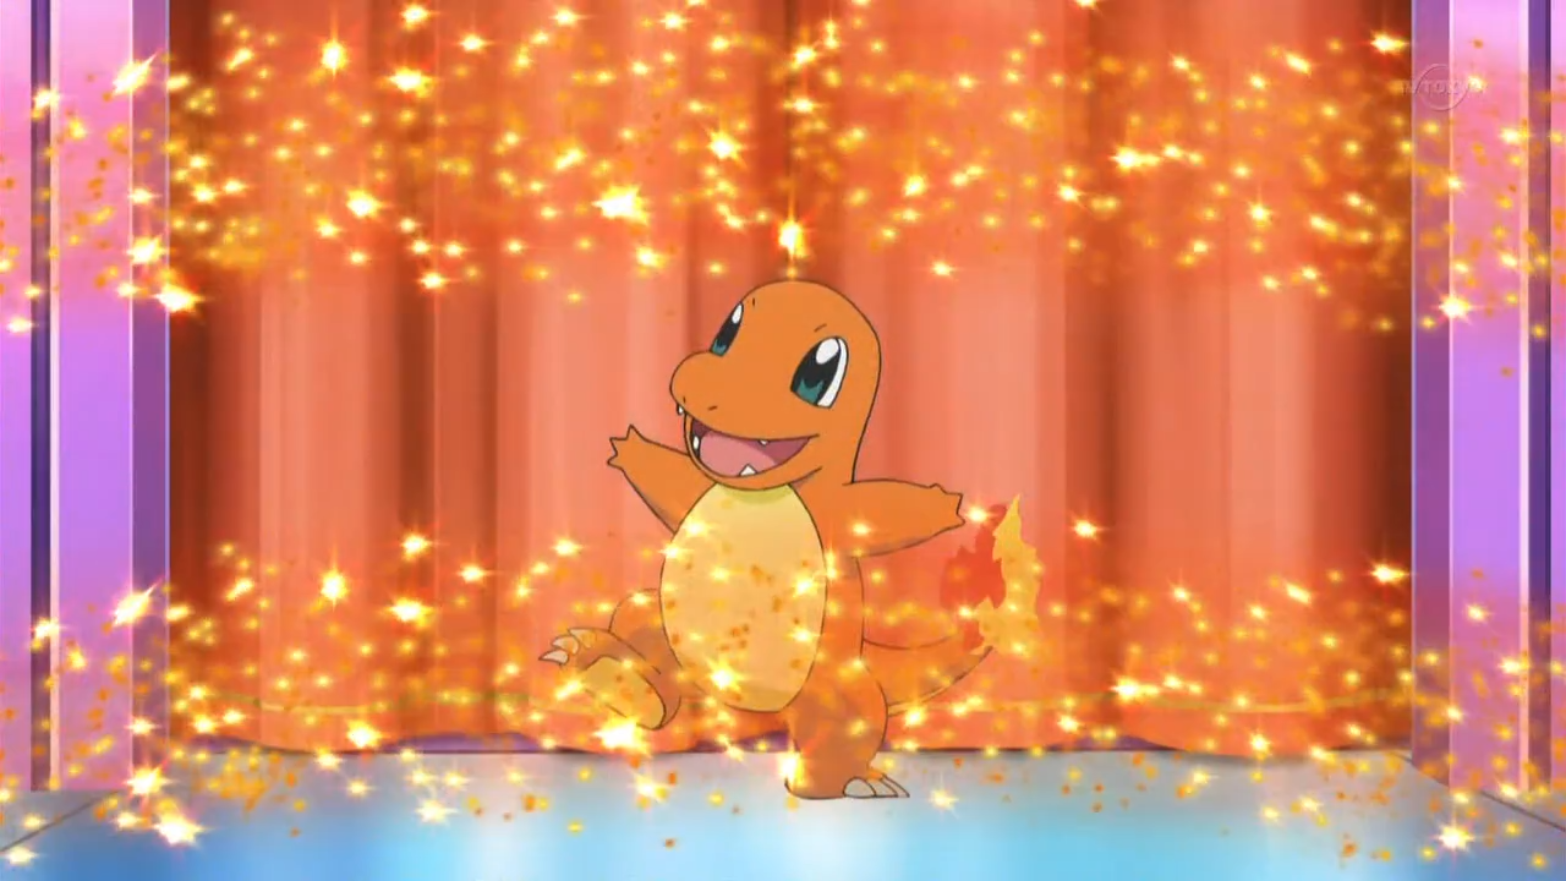 The host introduced Charmander, who got excited and carried off, knocking some parts of the stage it was on.